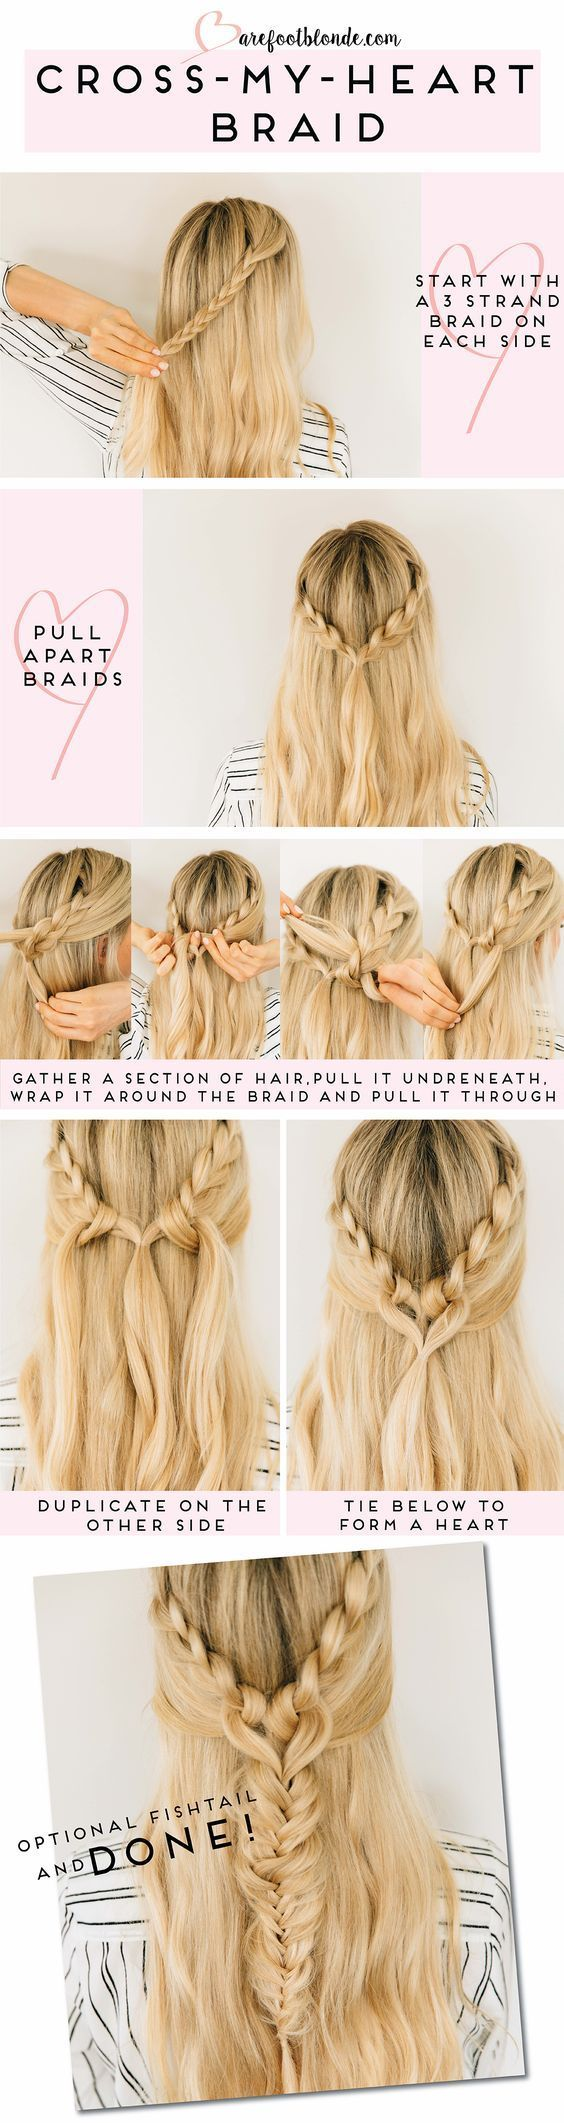 easy braided hairstyle tutorials that anyone can master long